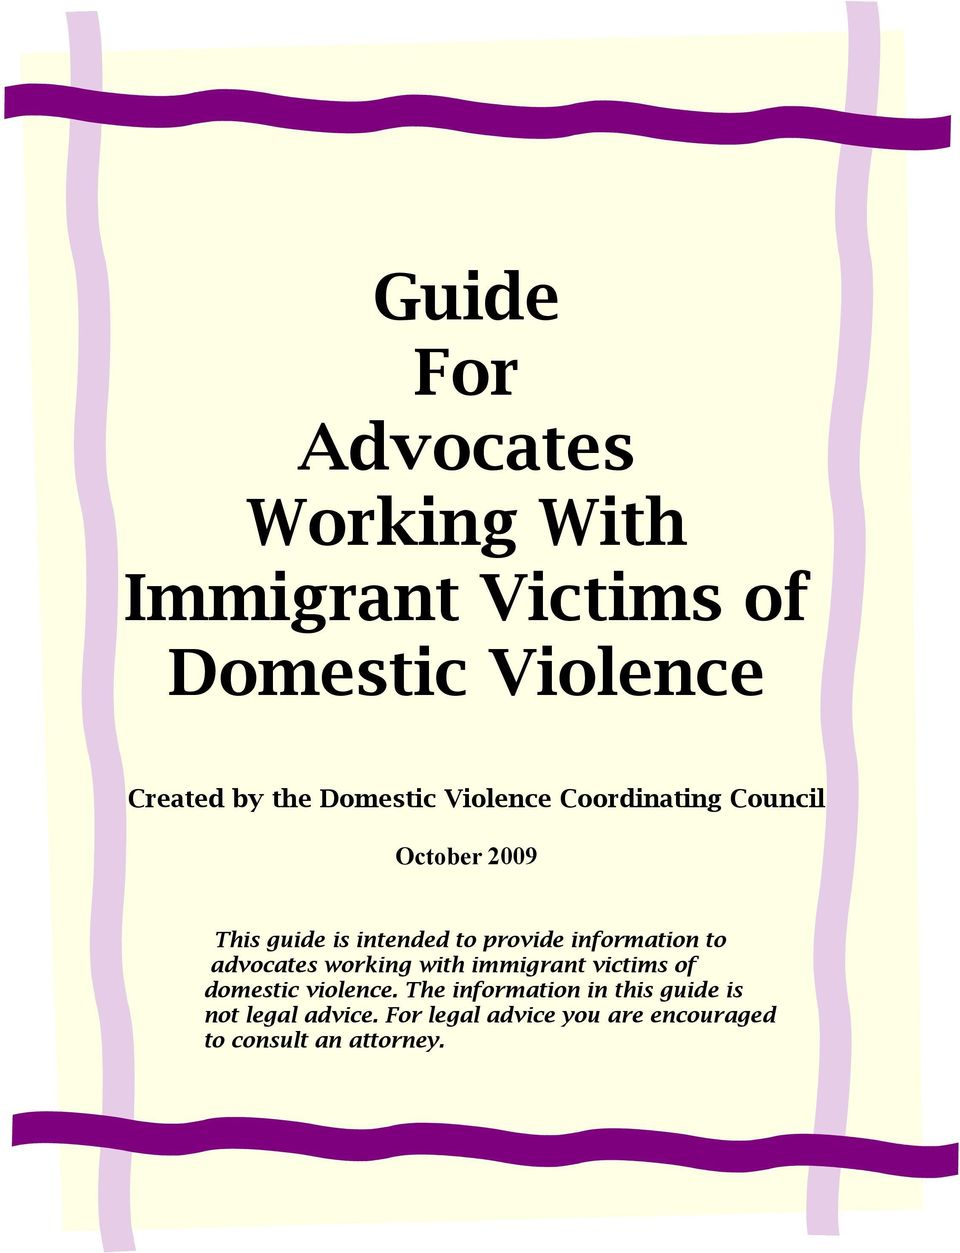 information to advocates working with immigrant victims of domestic violence.